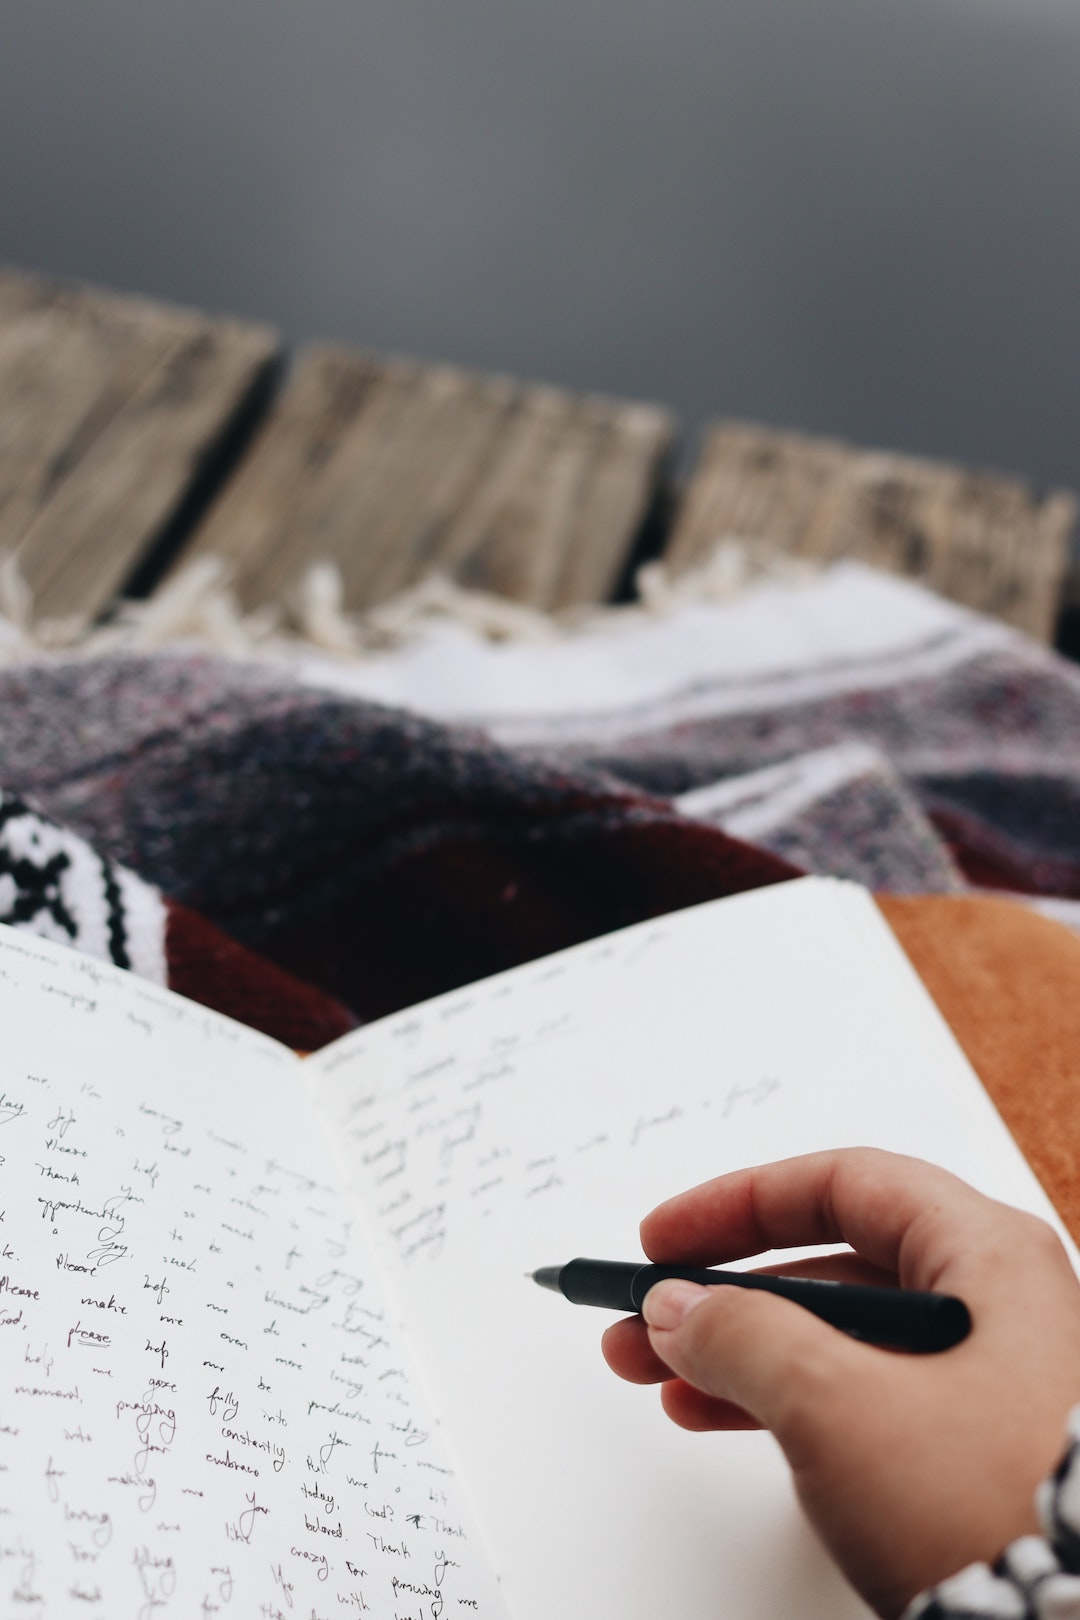 Journaling every day can help with our ability to digest stressful thoughts and worries.